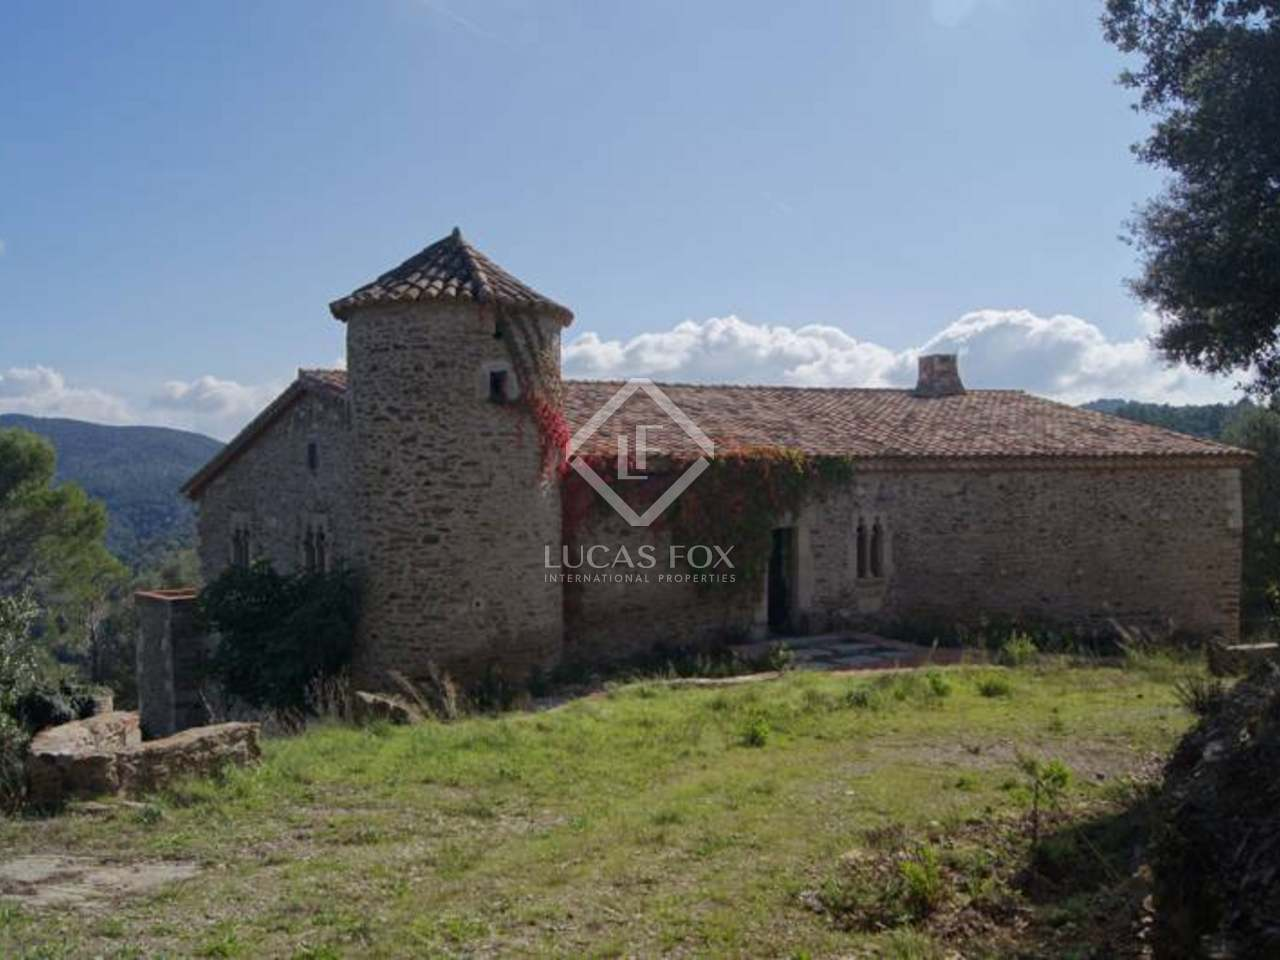 2 Bedrooms House For Rent Castle For Sale In Les Gavarres Near Girona City